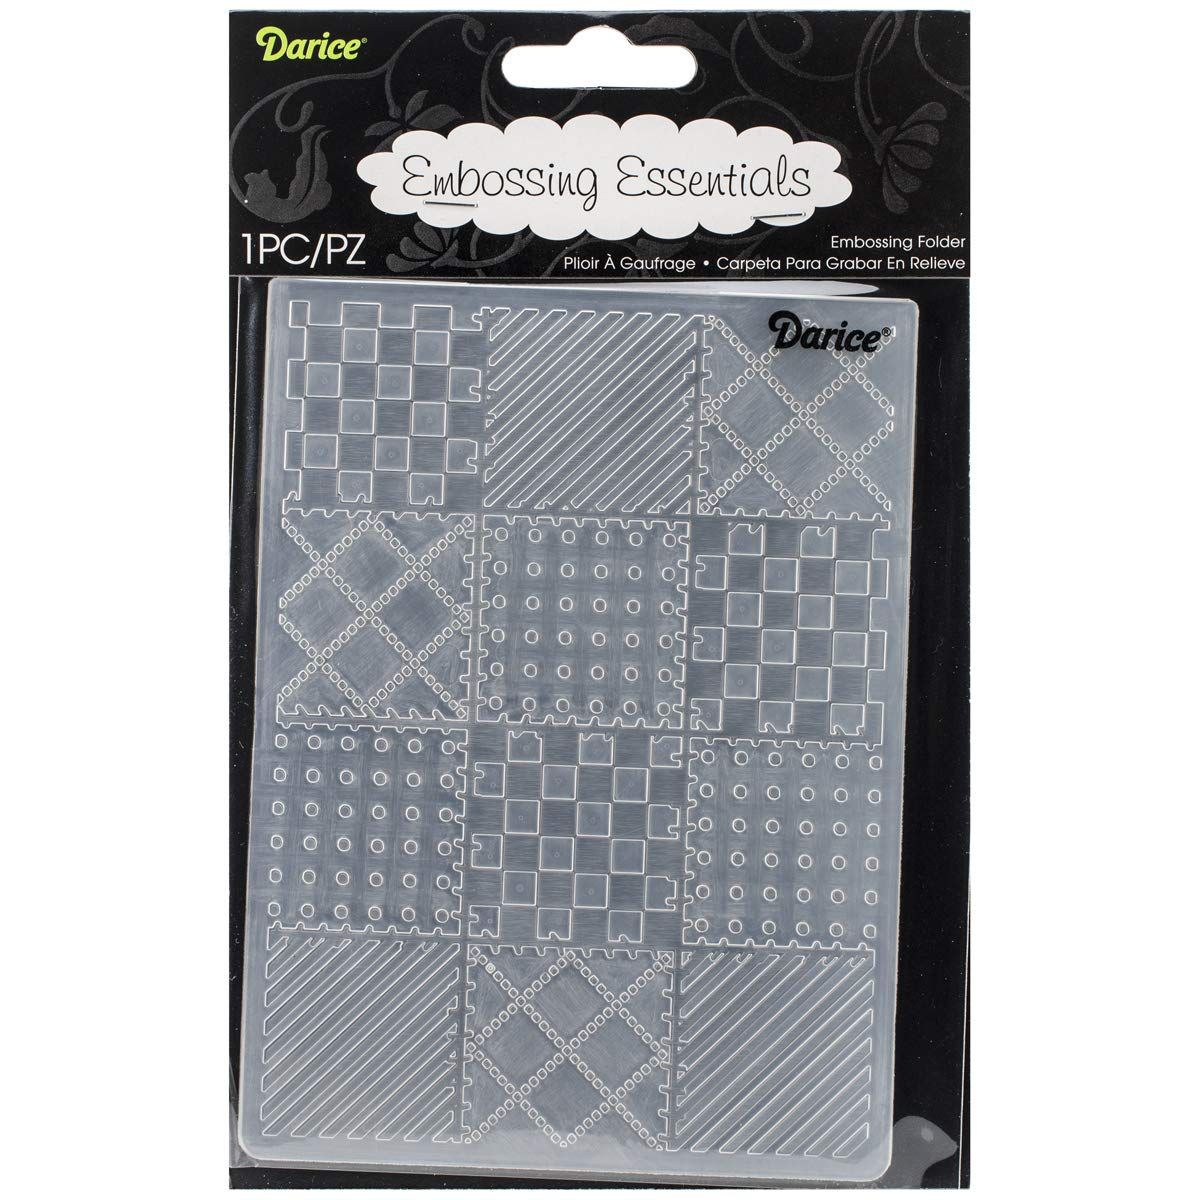 Embossing Folder Quilt Blocks 4.25 X 5.75 Inches (8 Pack)